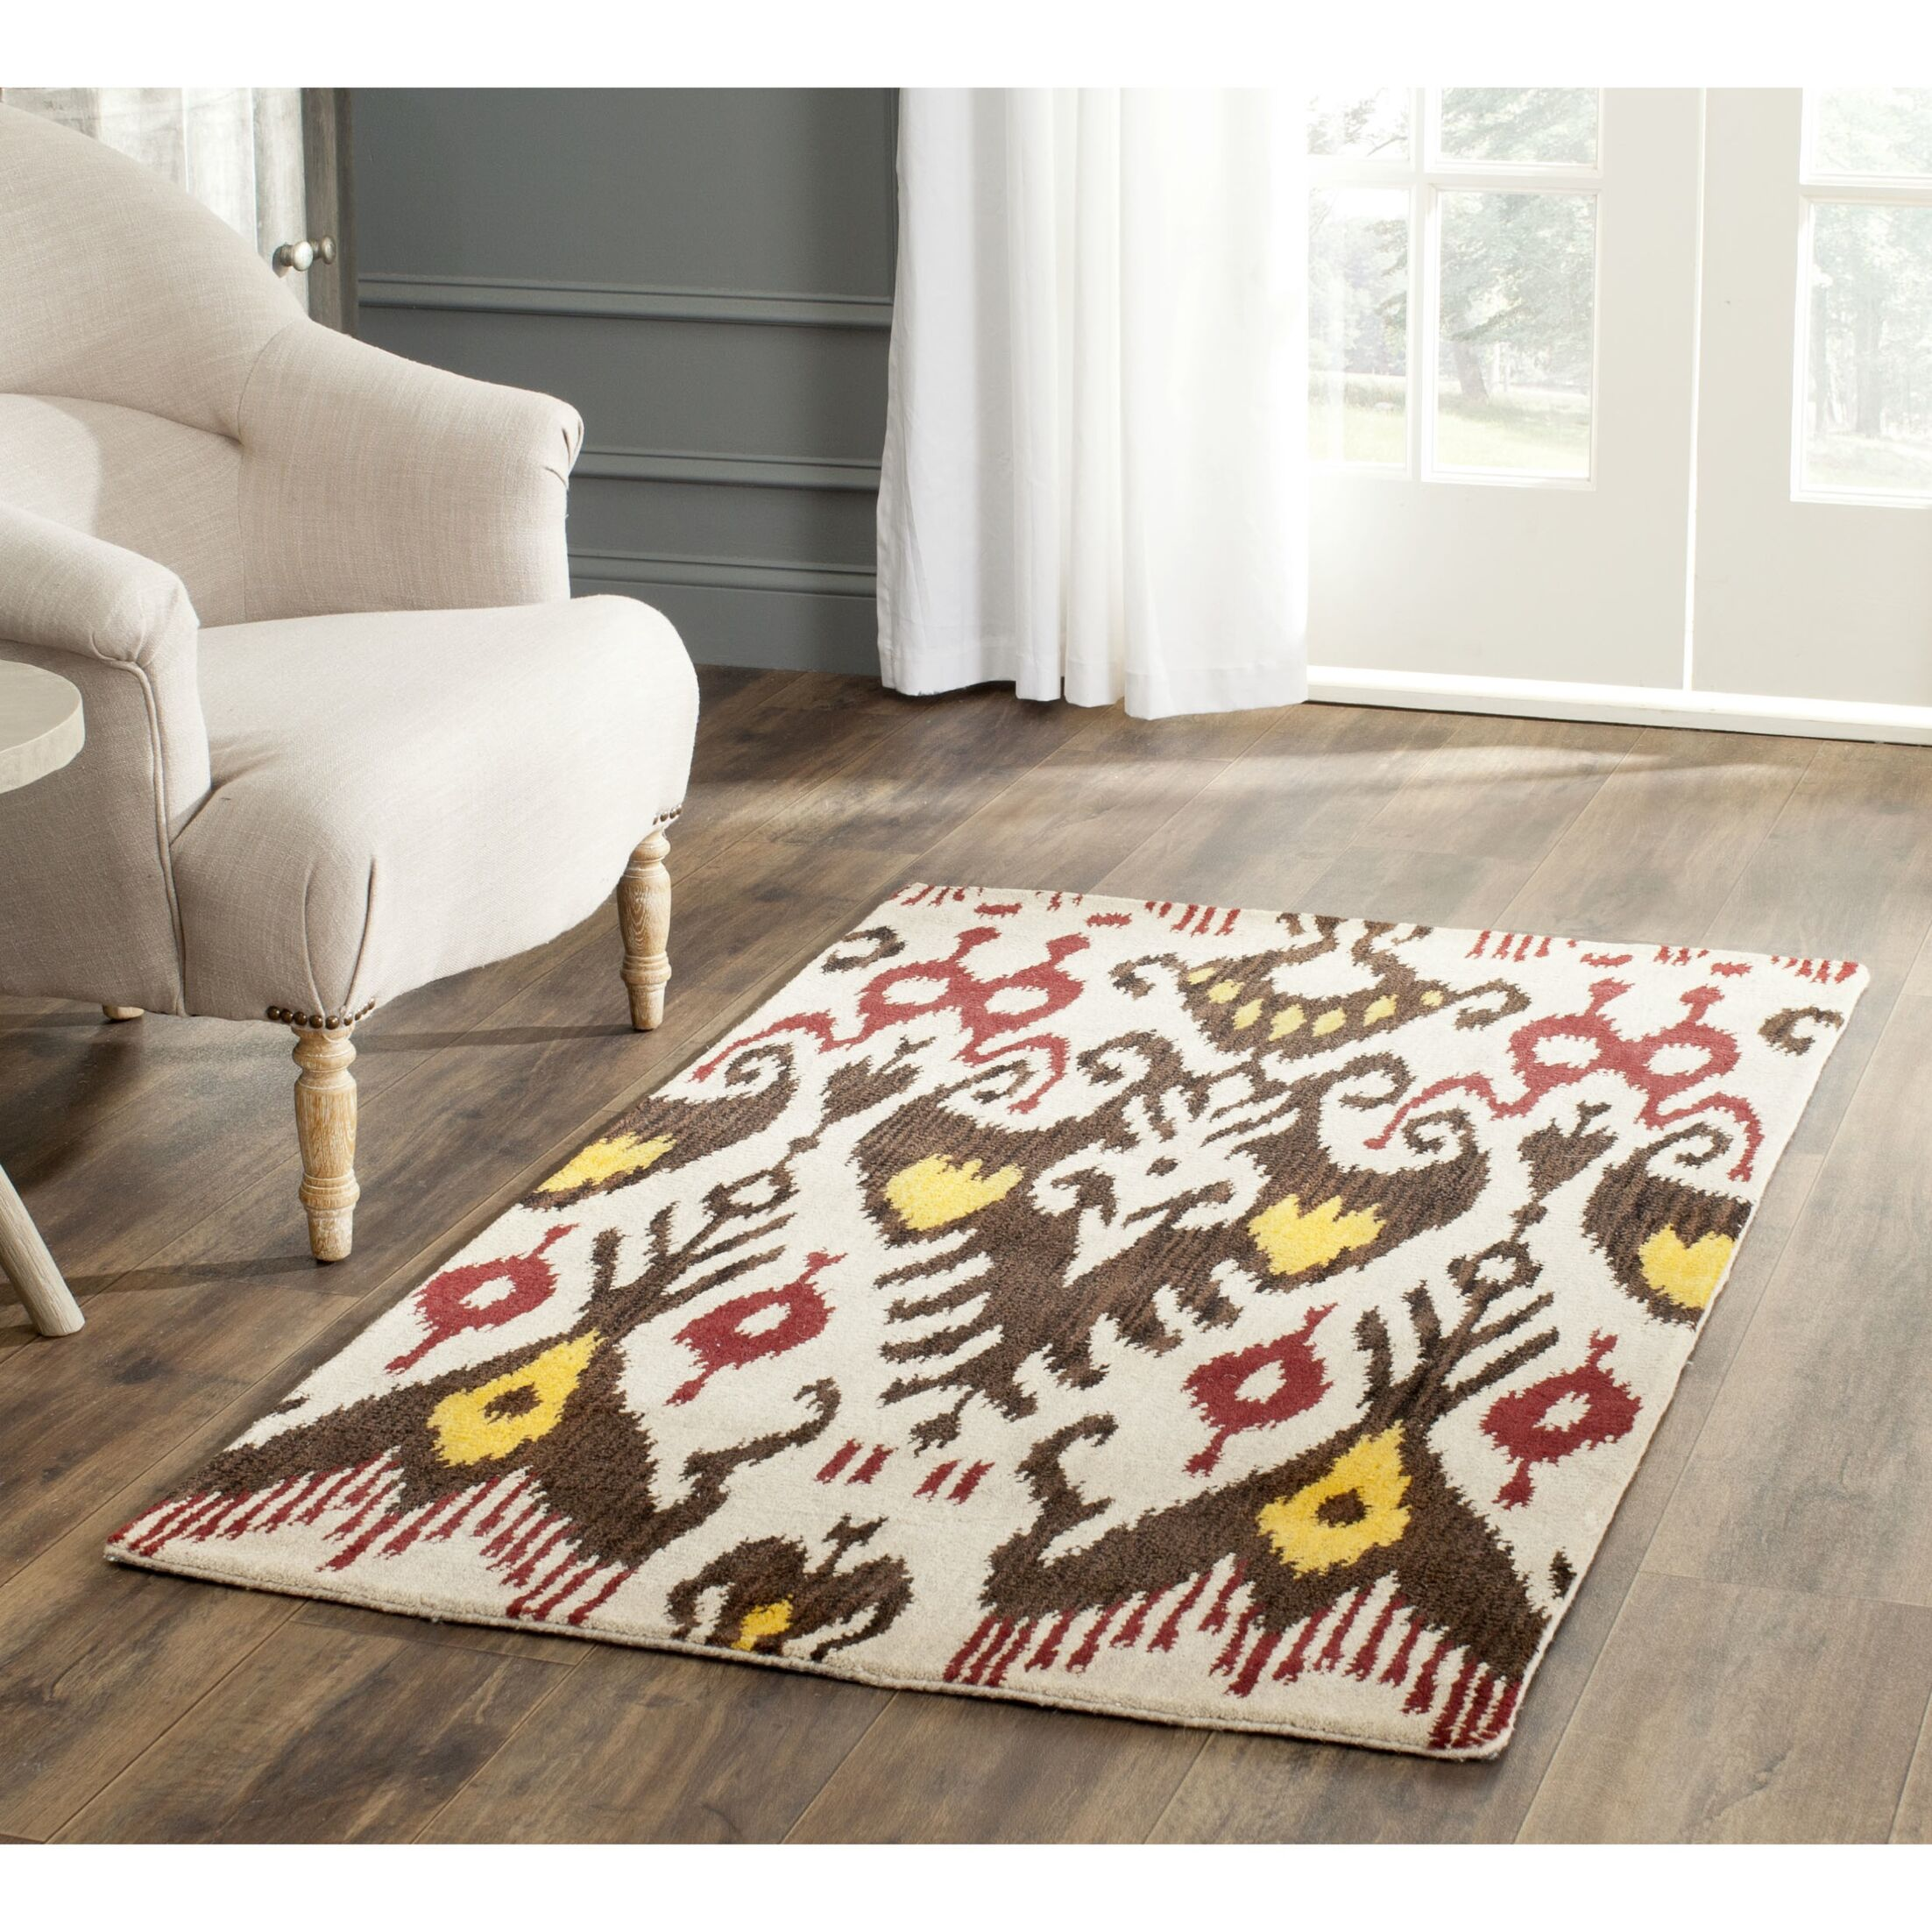 Ikat Hand-Woven Wool Beige/Brown Area Rug Rug Size: Square 6'